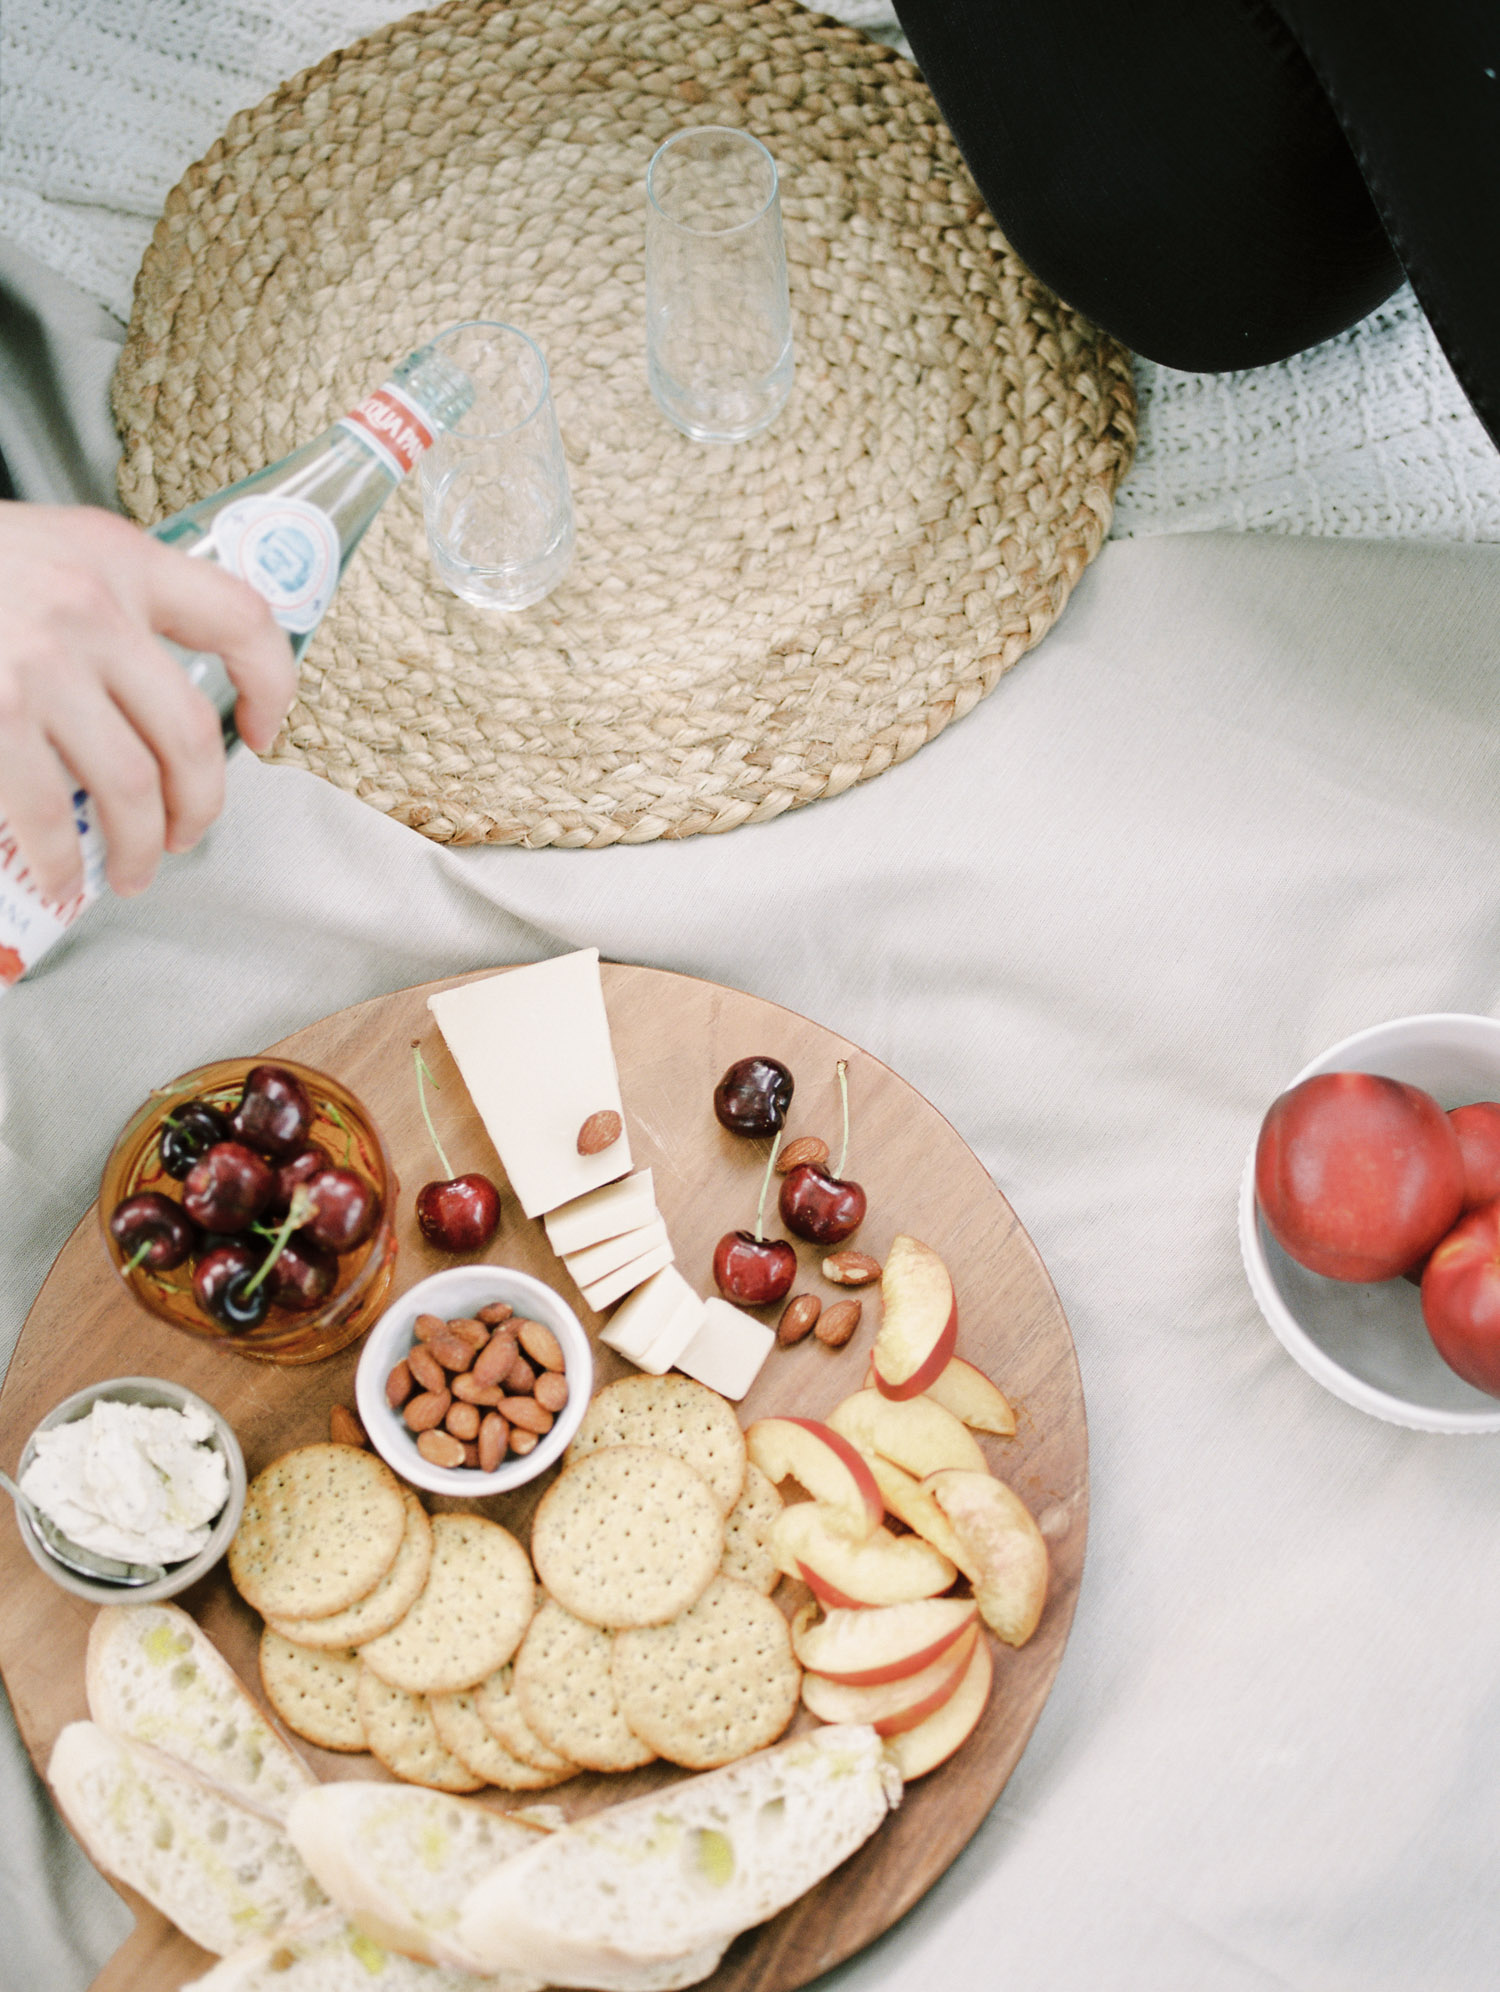 A vegan charcuterie spread with cherries, almonds, and seasonal summer fruit during an at home session for a Detroit couple